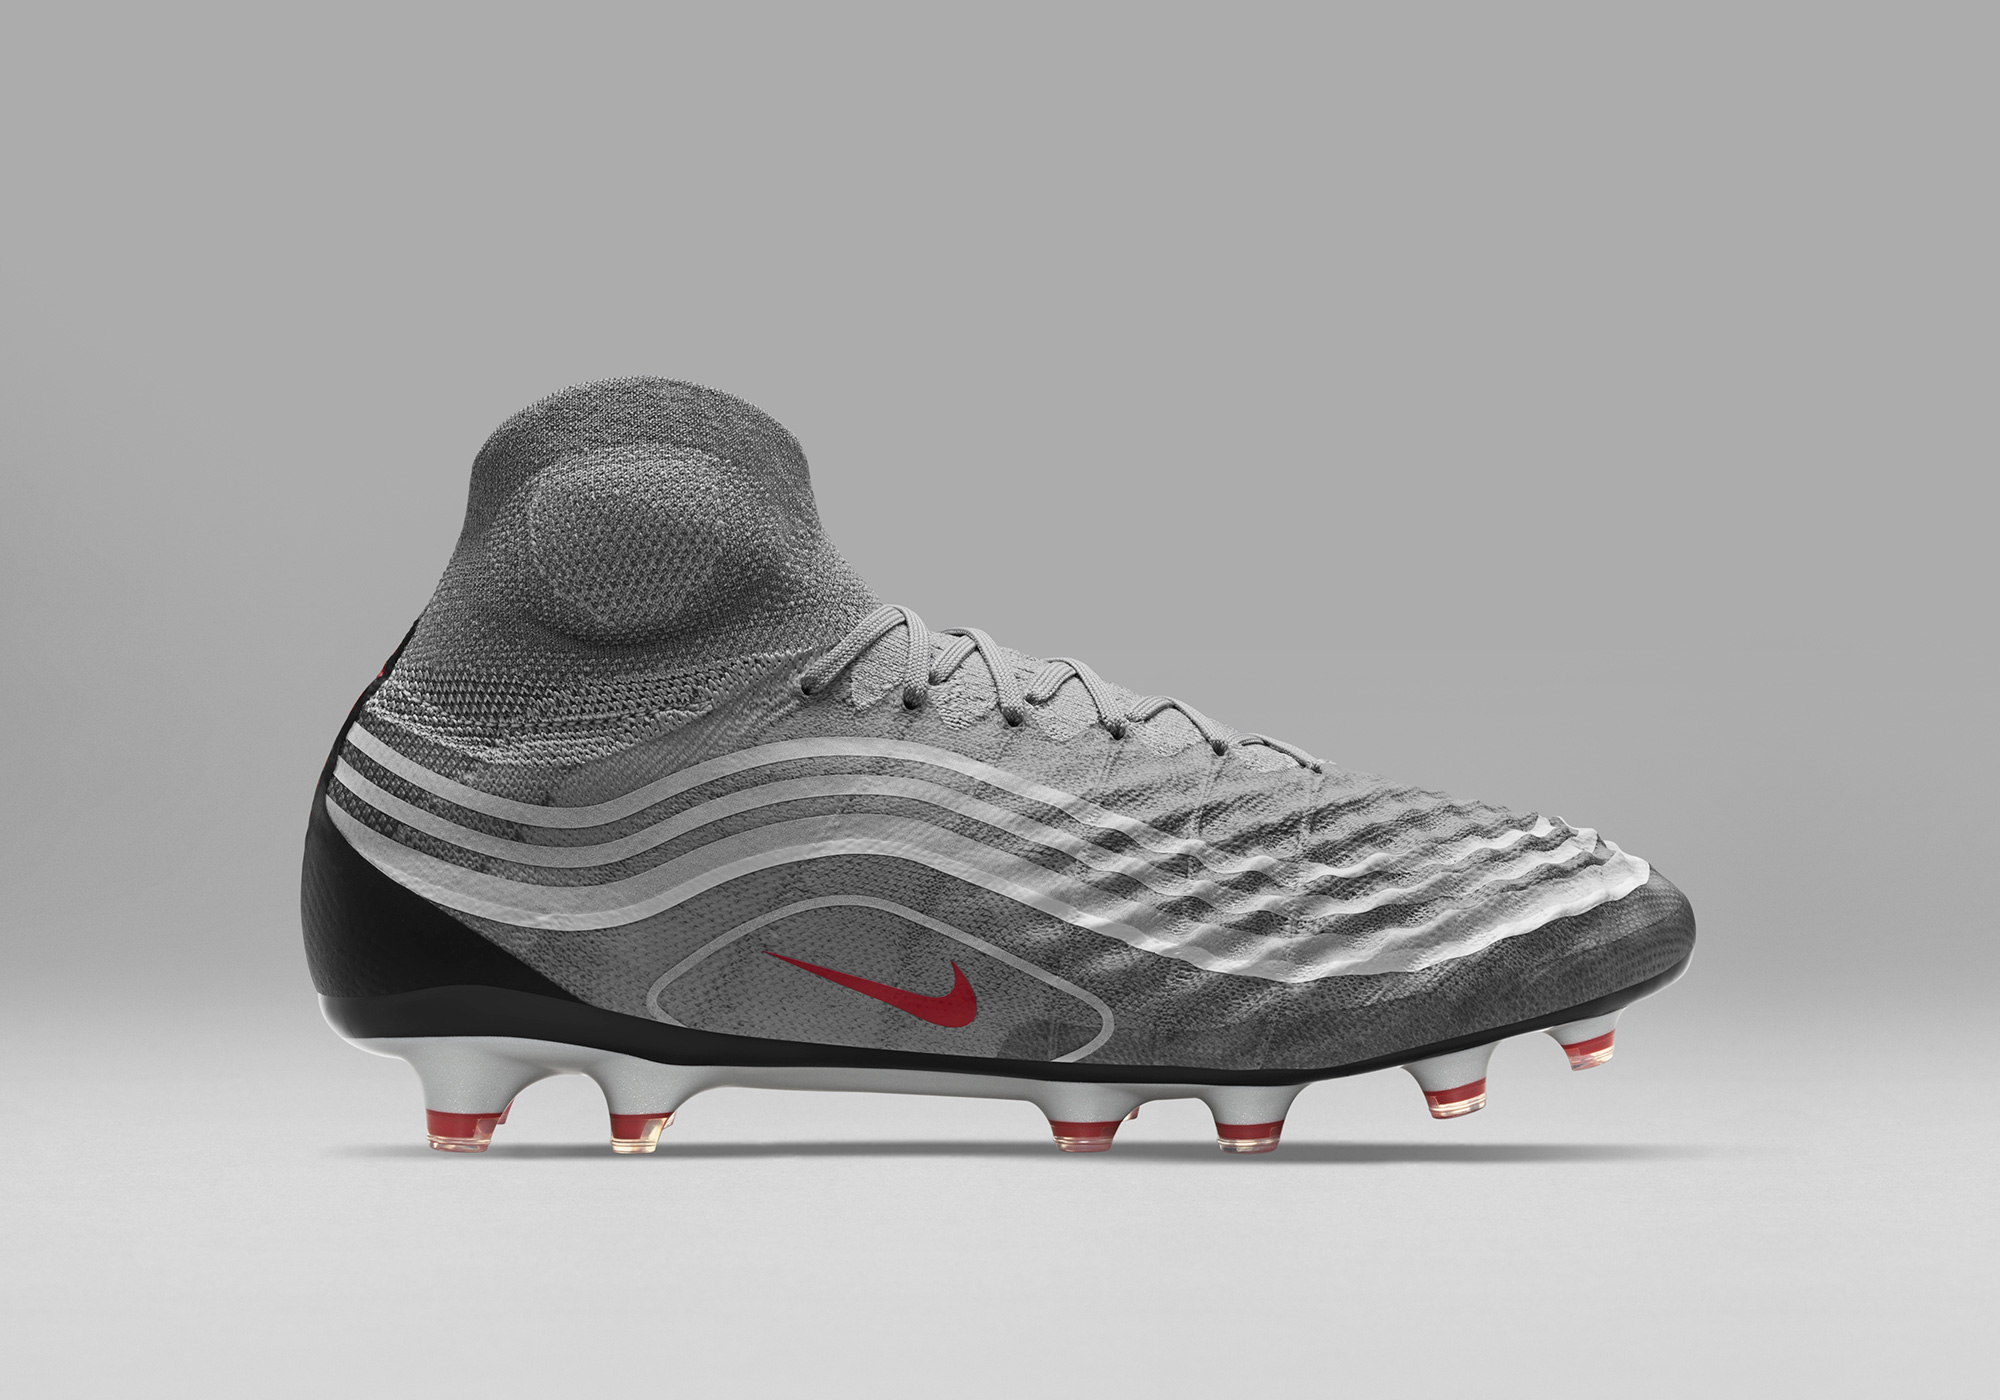 SP17_GFB_Revolution_Pack_848647-060_NIKE_MAGISTA_OBRA_II_FG_1_8_67264